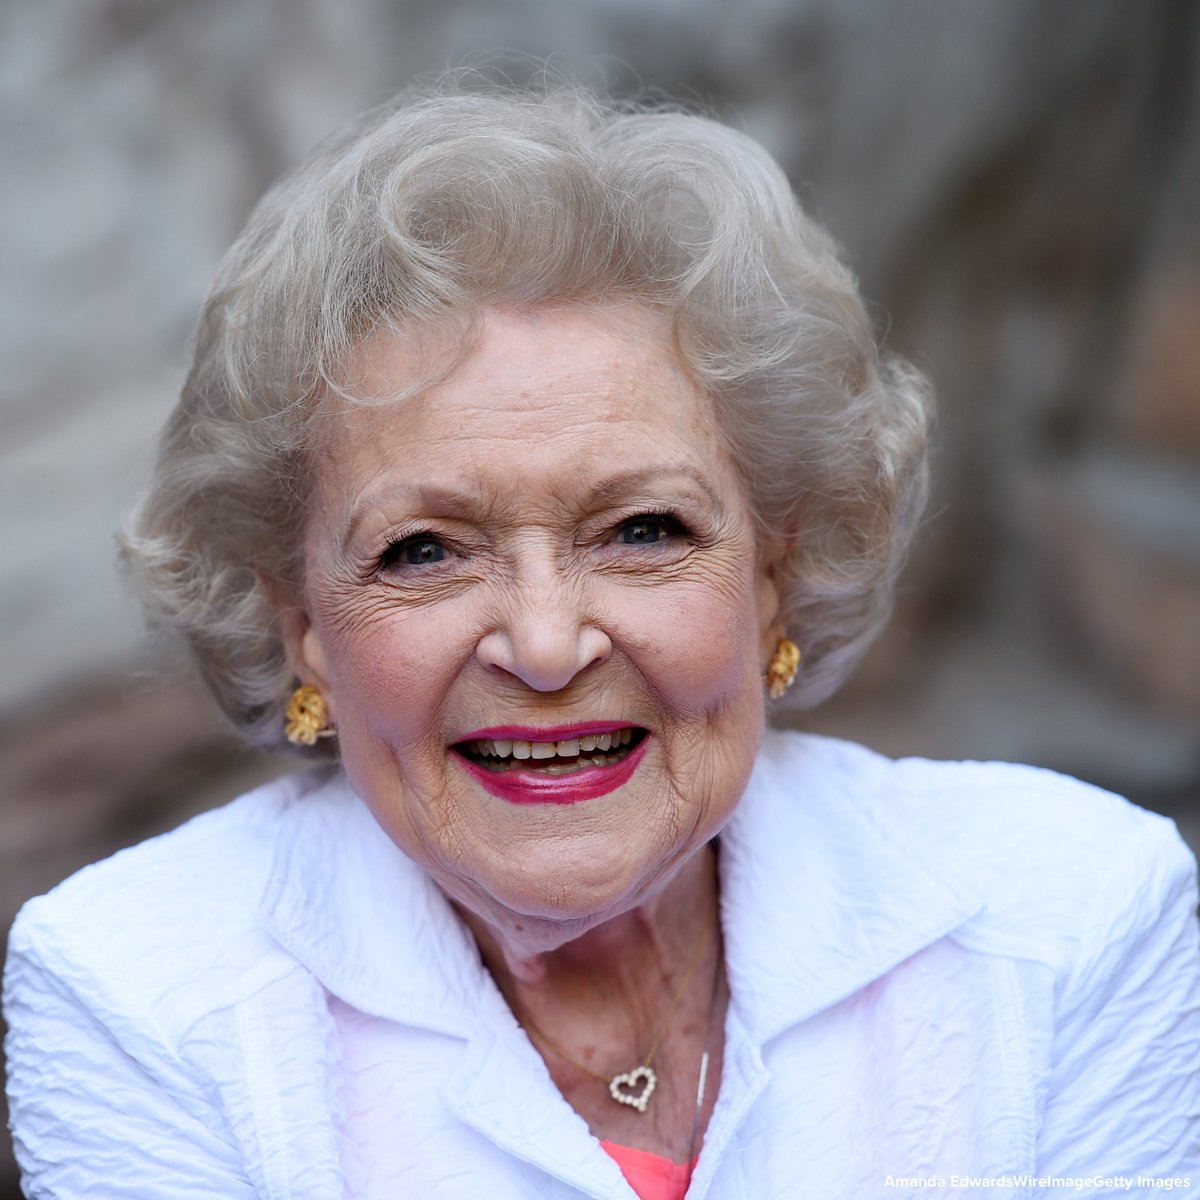 HAPPY BIRTHDAY: Beloved comedic actress Betty White turns 97 today. https://abcn.ws/2DgkzmU